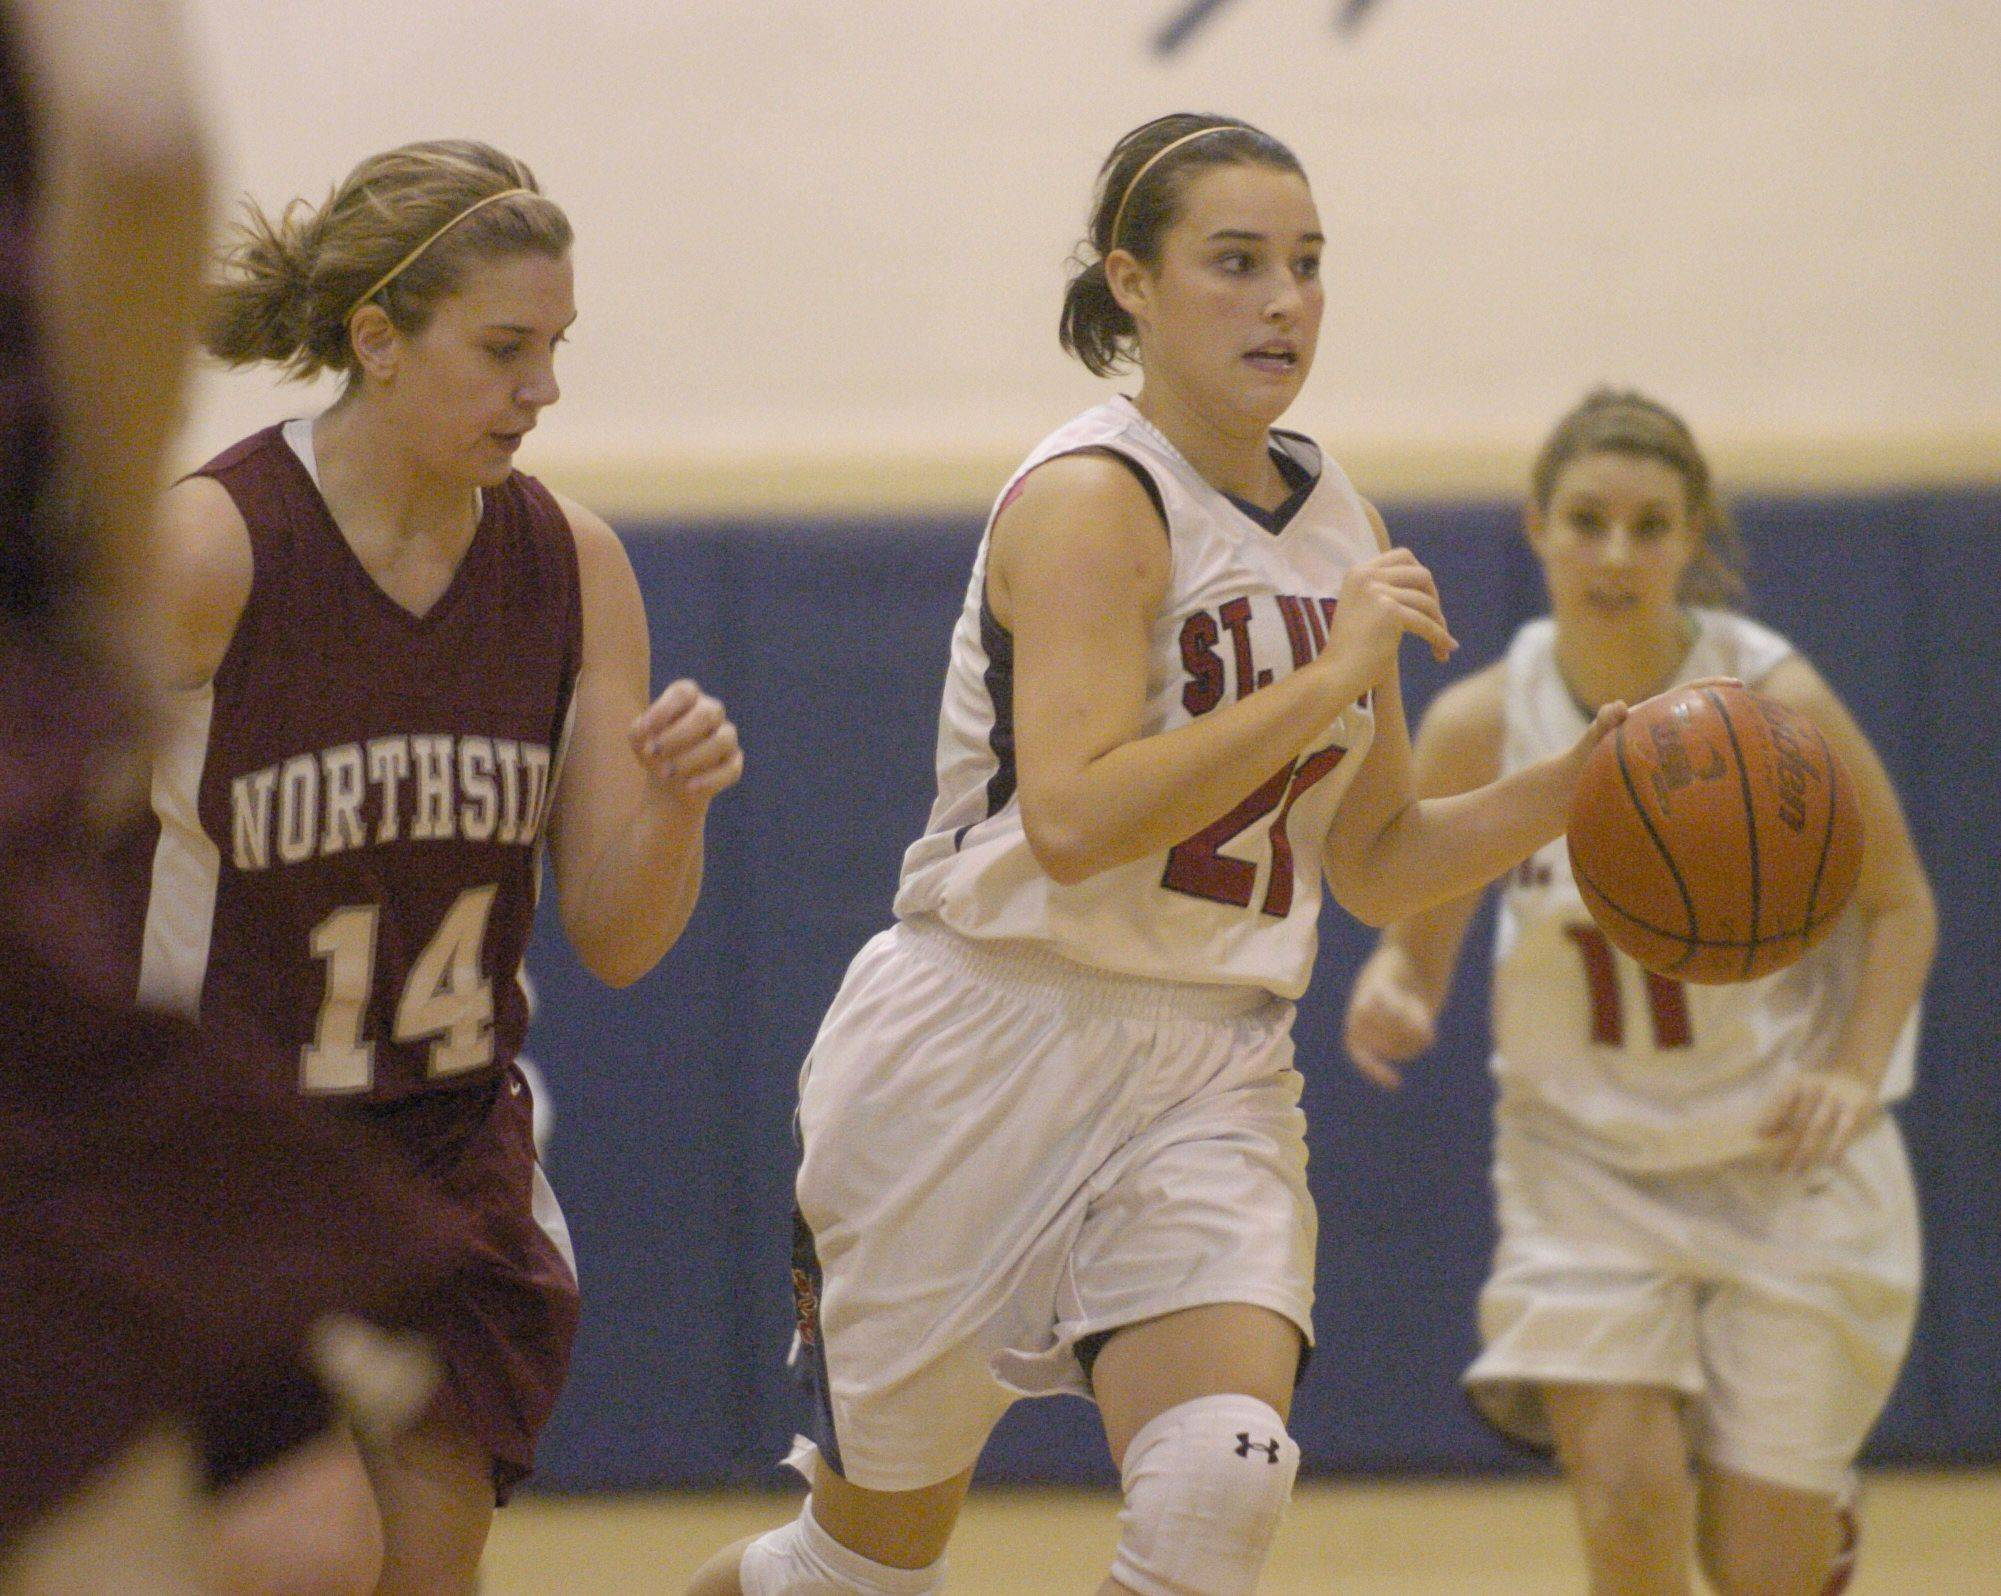 Images from the St. Viator vs. Northside Prep girls basketball game Tuesday, December 28, 2010.